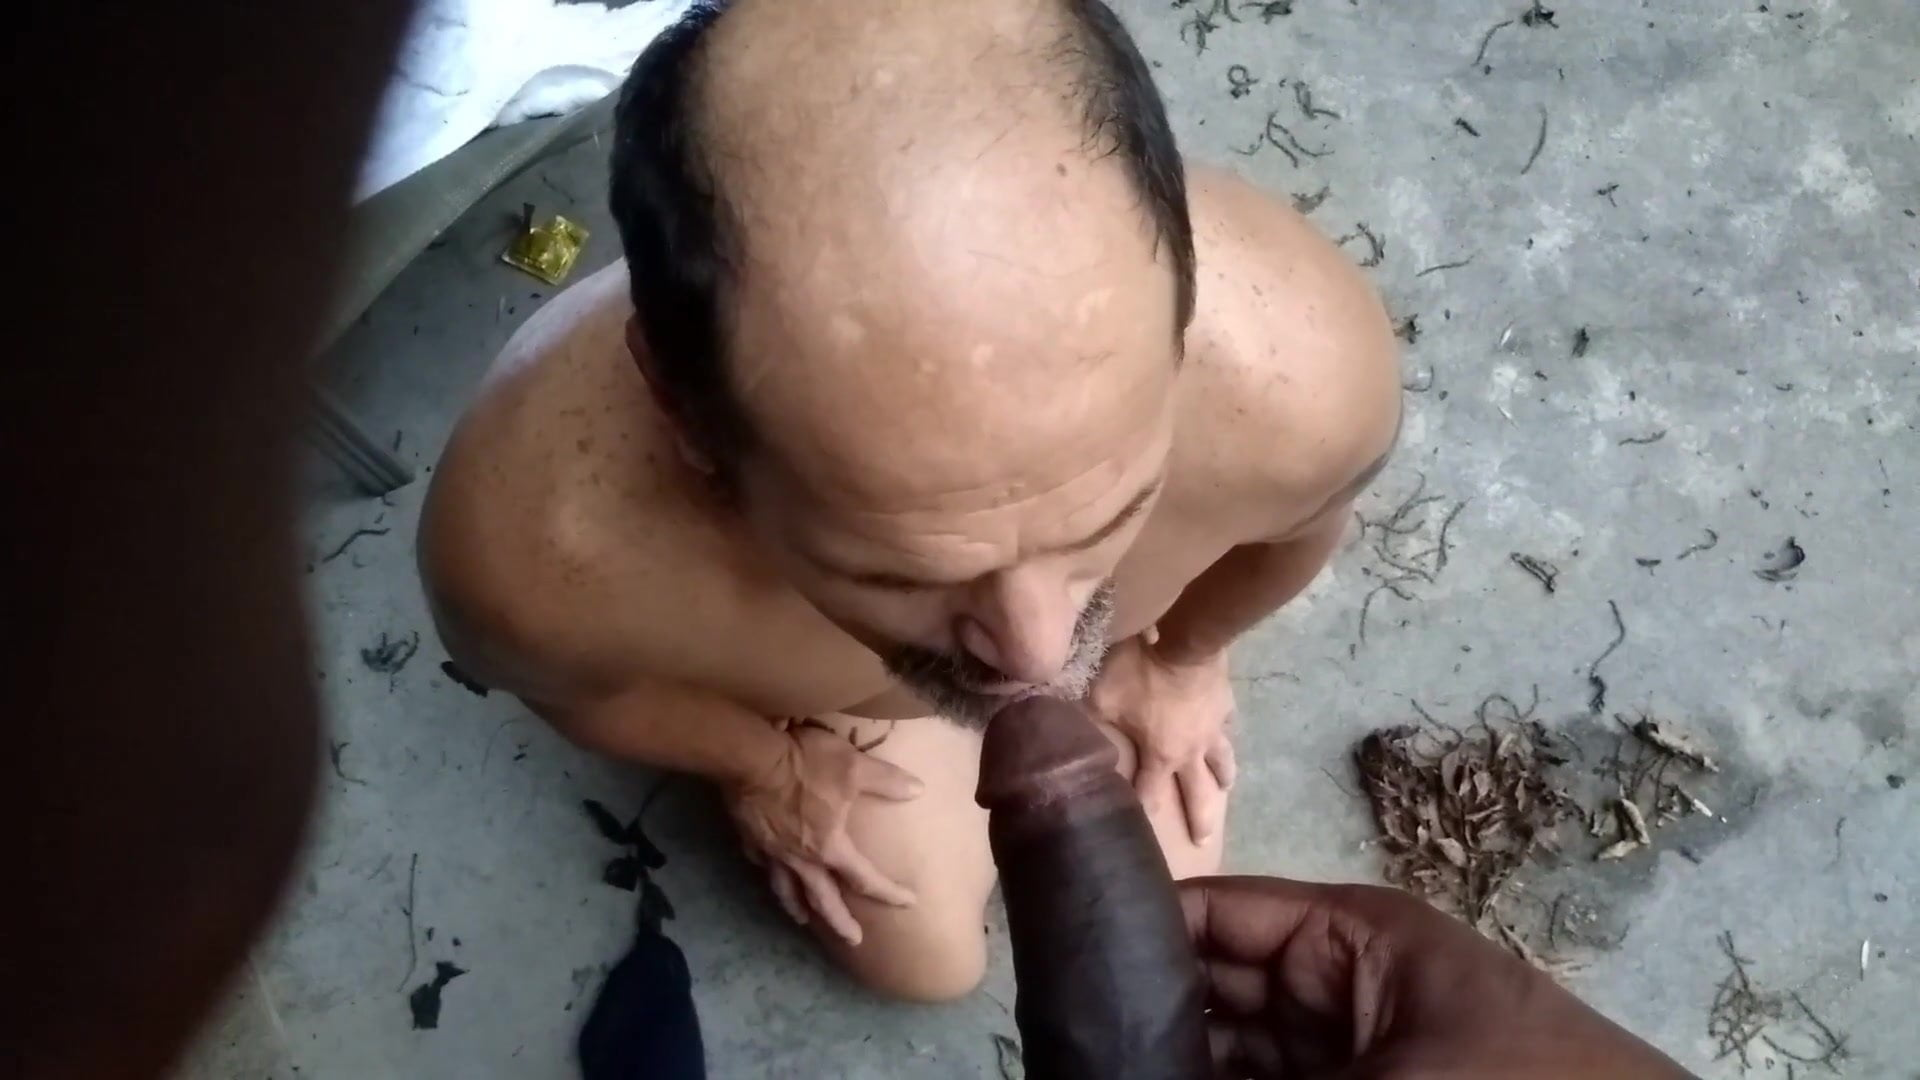 Drinking Piss From Bbc, Free Bbc Gay Hd Porn C0 Xhamster-6816